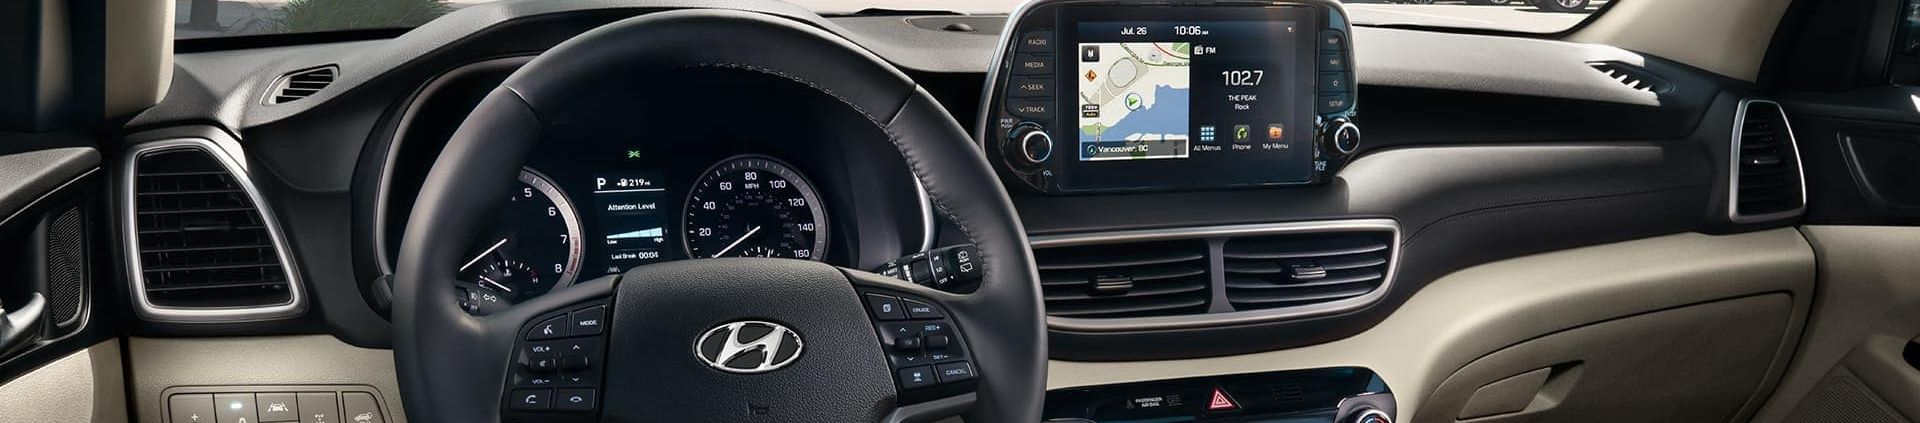 2019 Hyundai Tucson Center Console